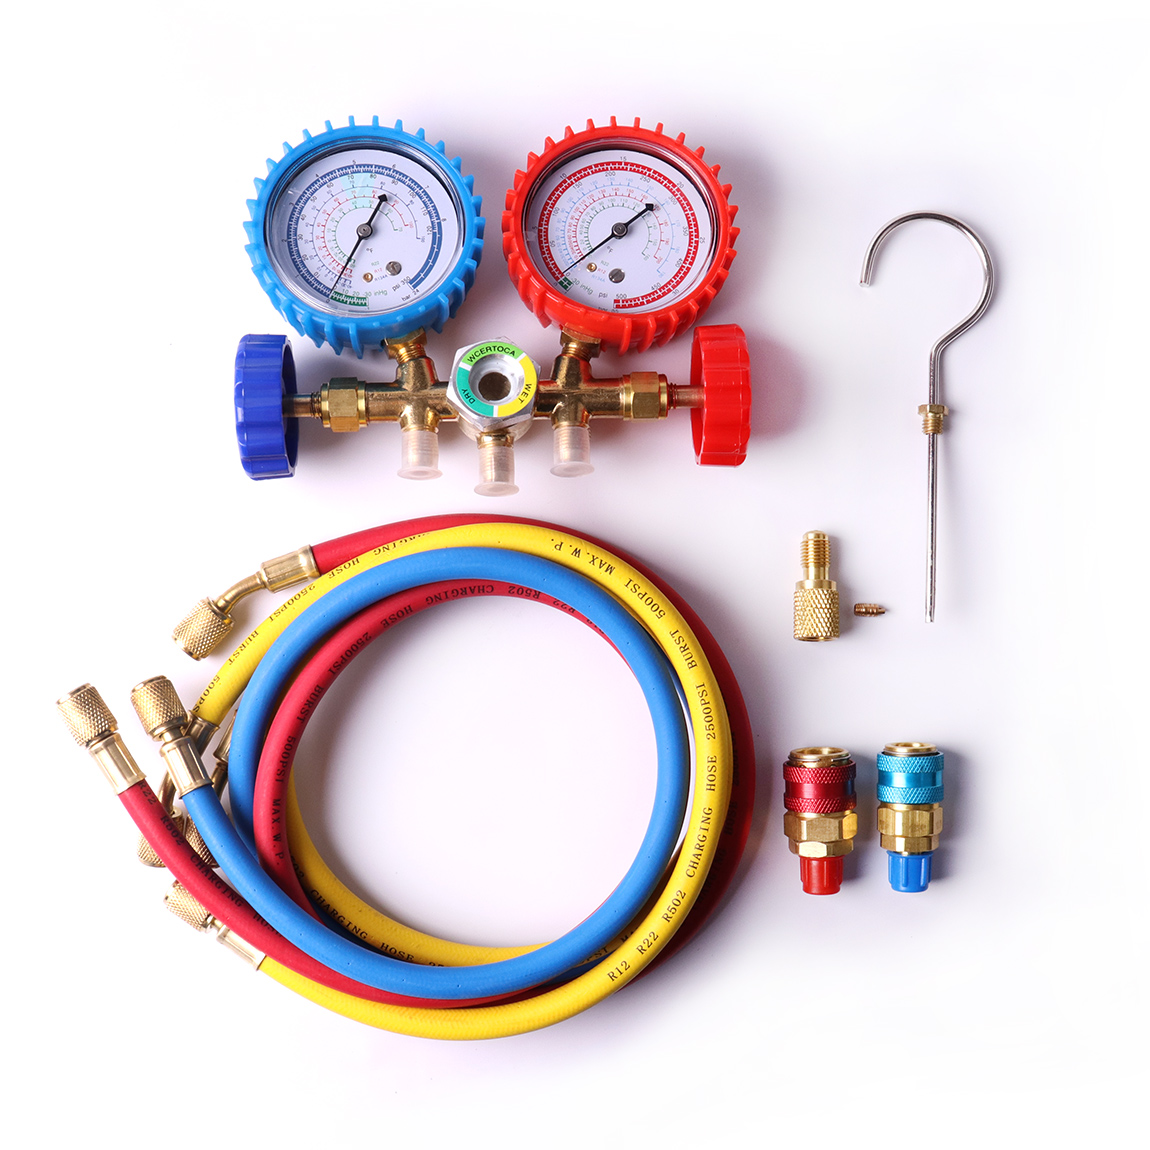 New Air Conditioning Red Blue H-L R134 Quick Couplers R12 R22 R502 and R134a A/C Manifold Brass Gauge Set with 3 Charging Hoses usb laser handheld barcode scanner reader for desktop laptop 2m cable page 1